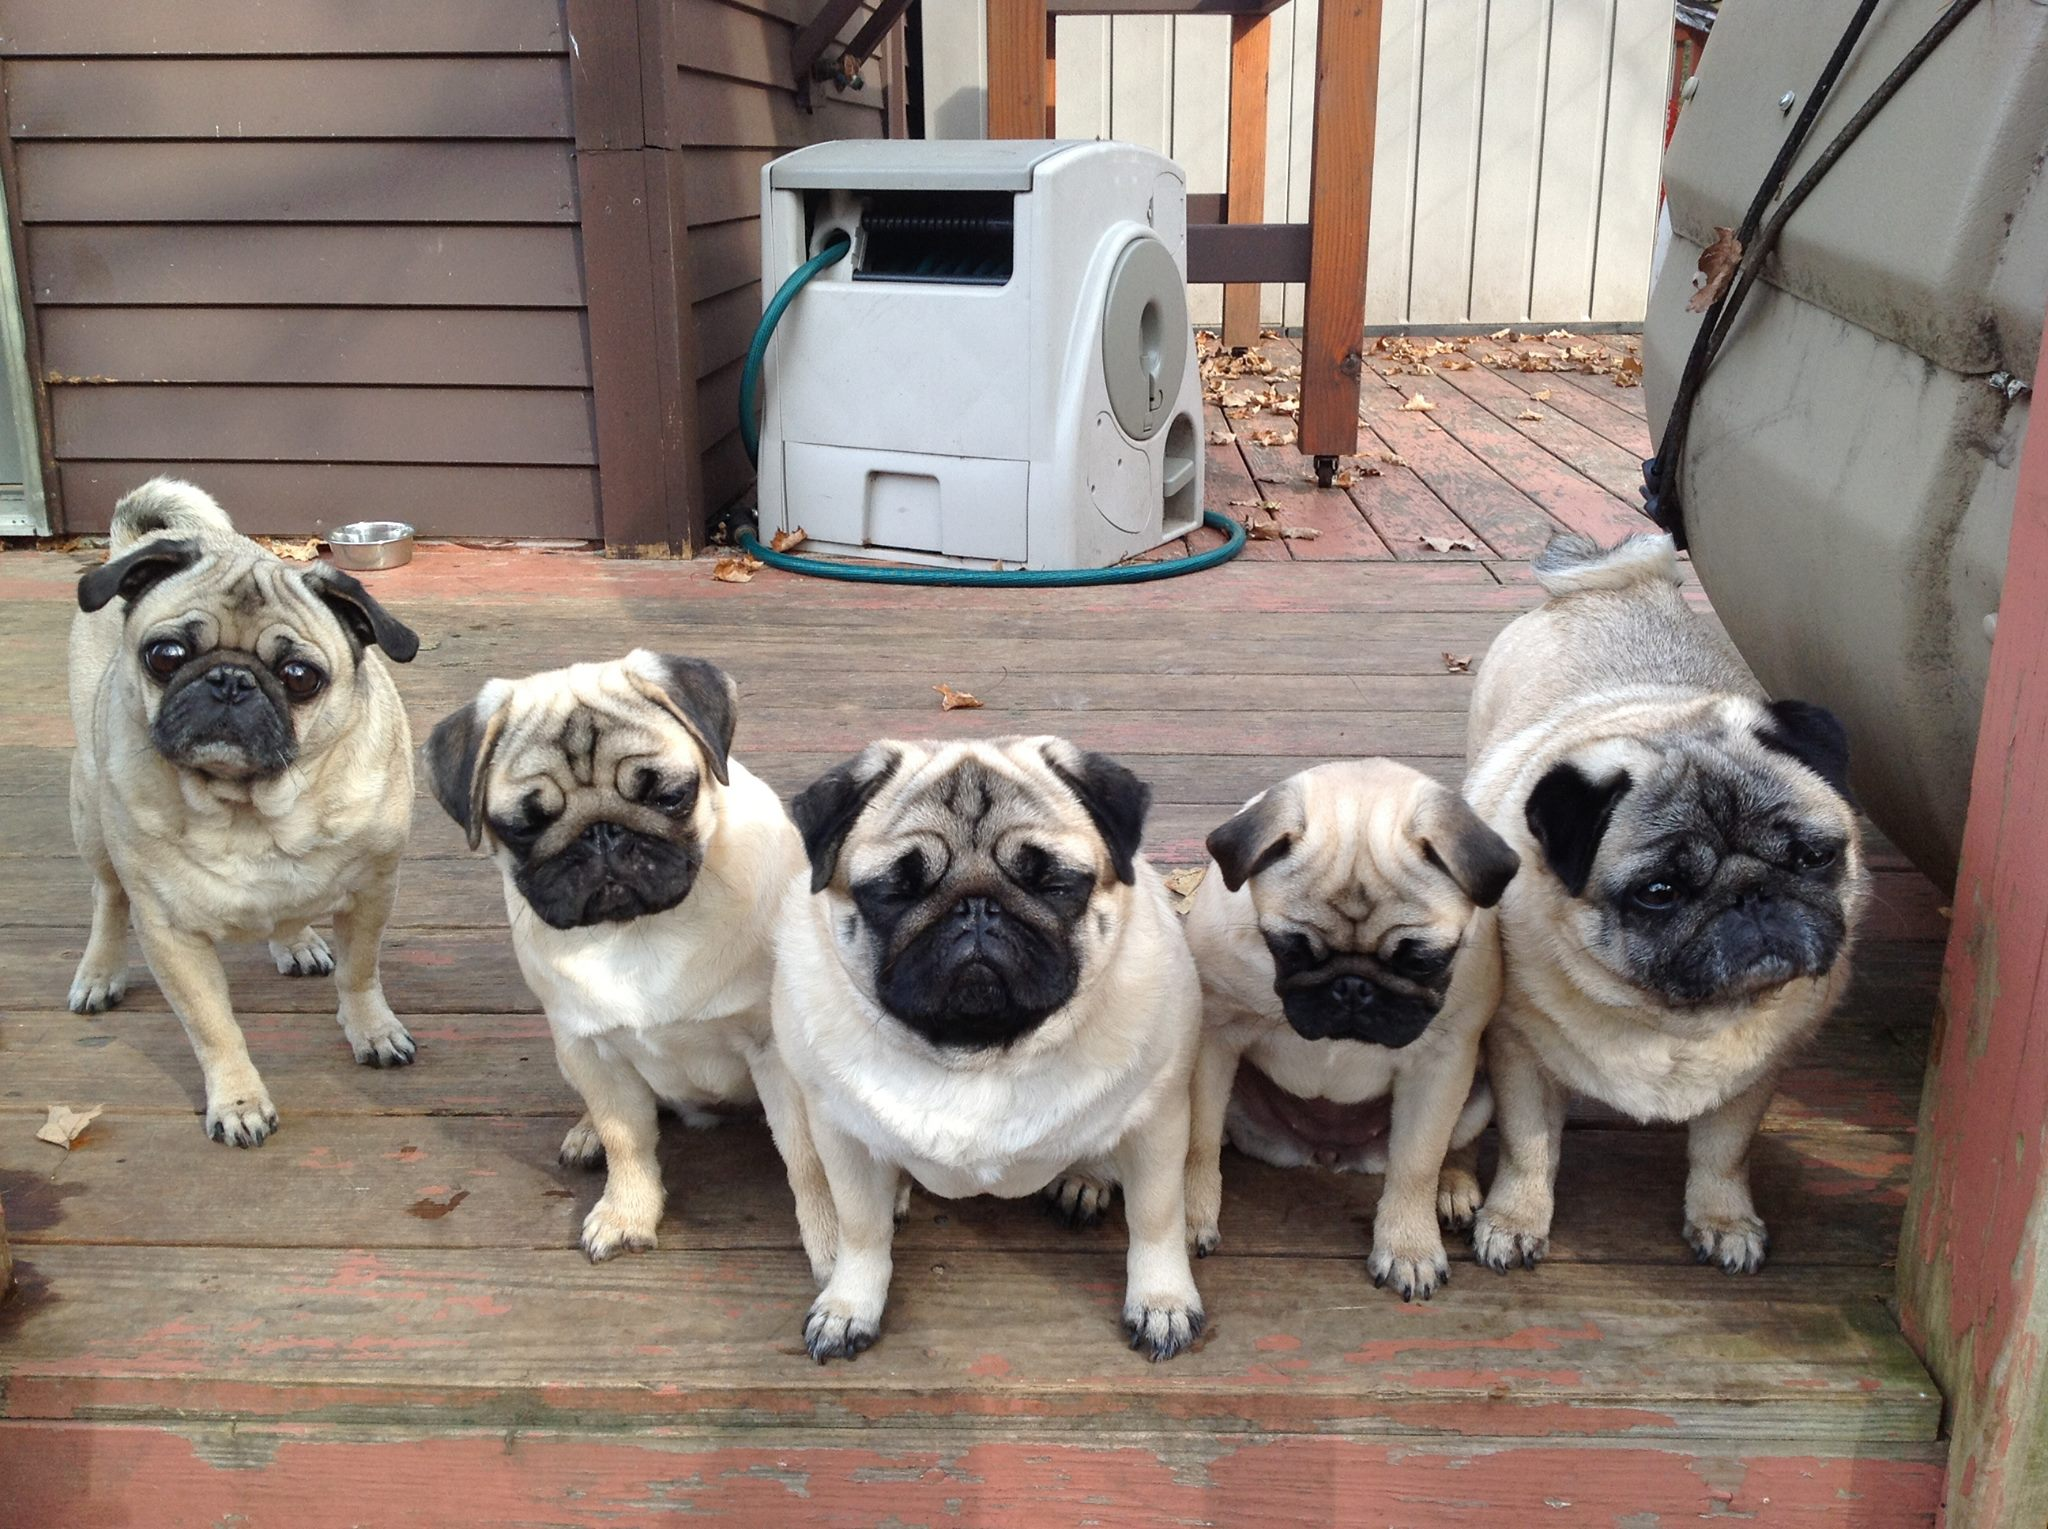 Five Pugs in a row